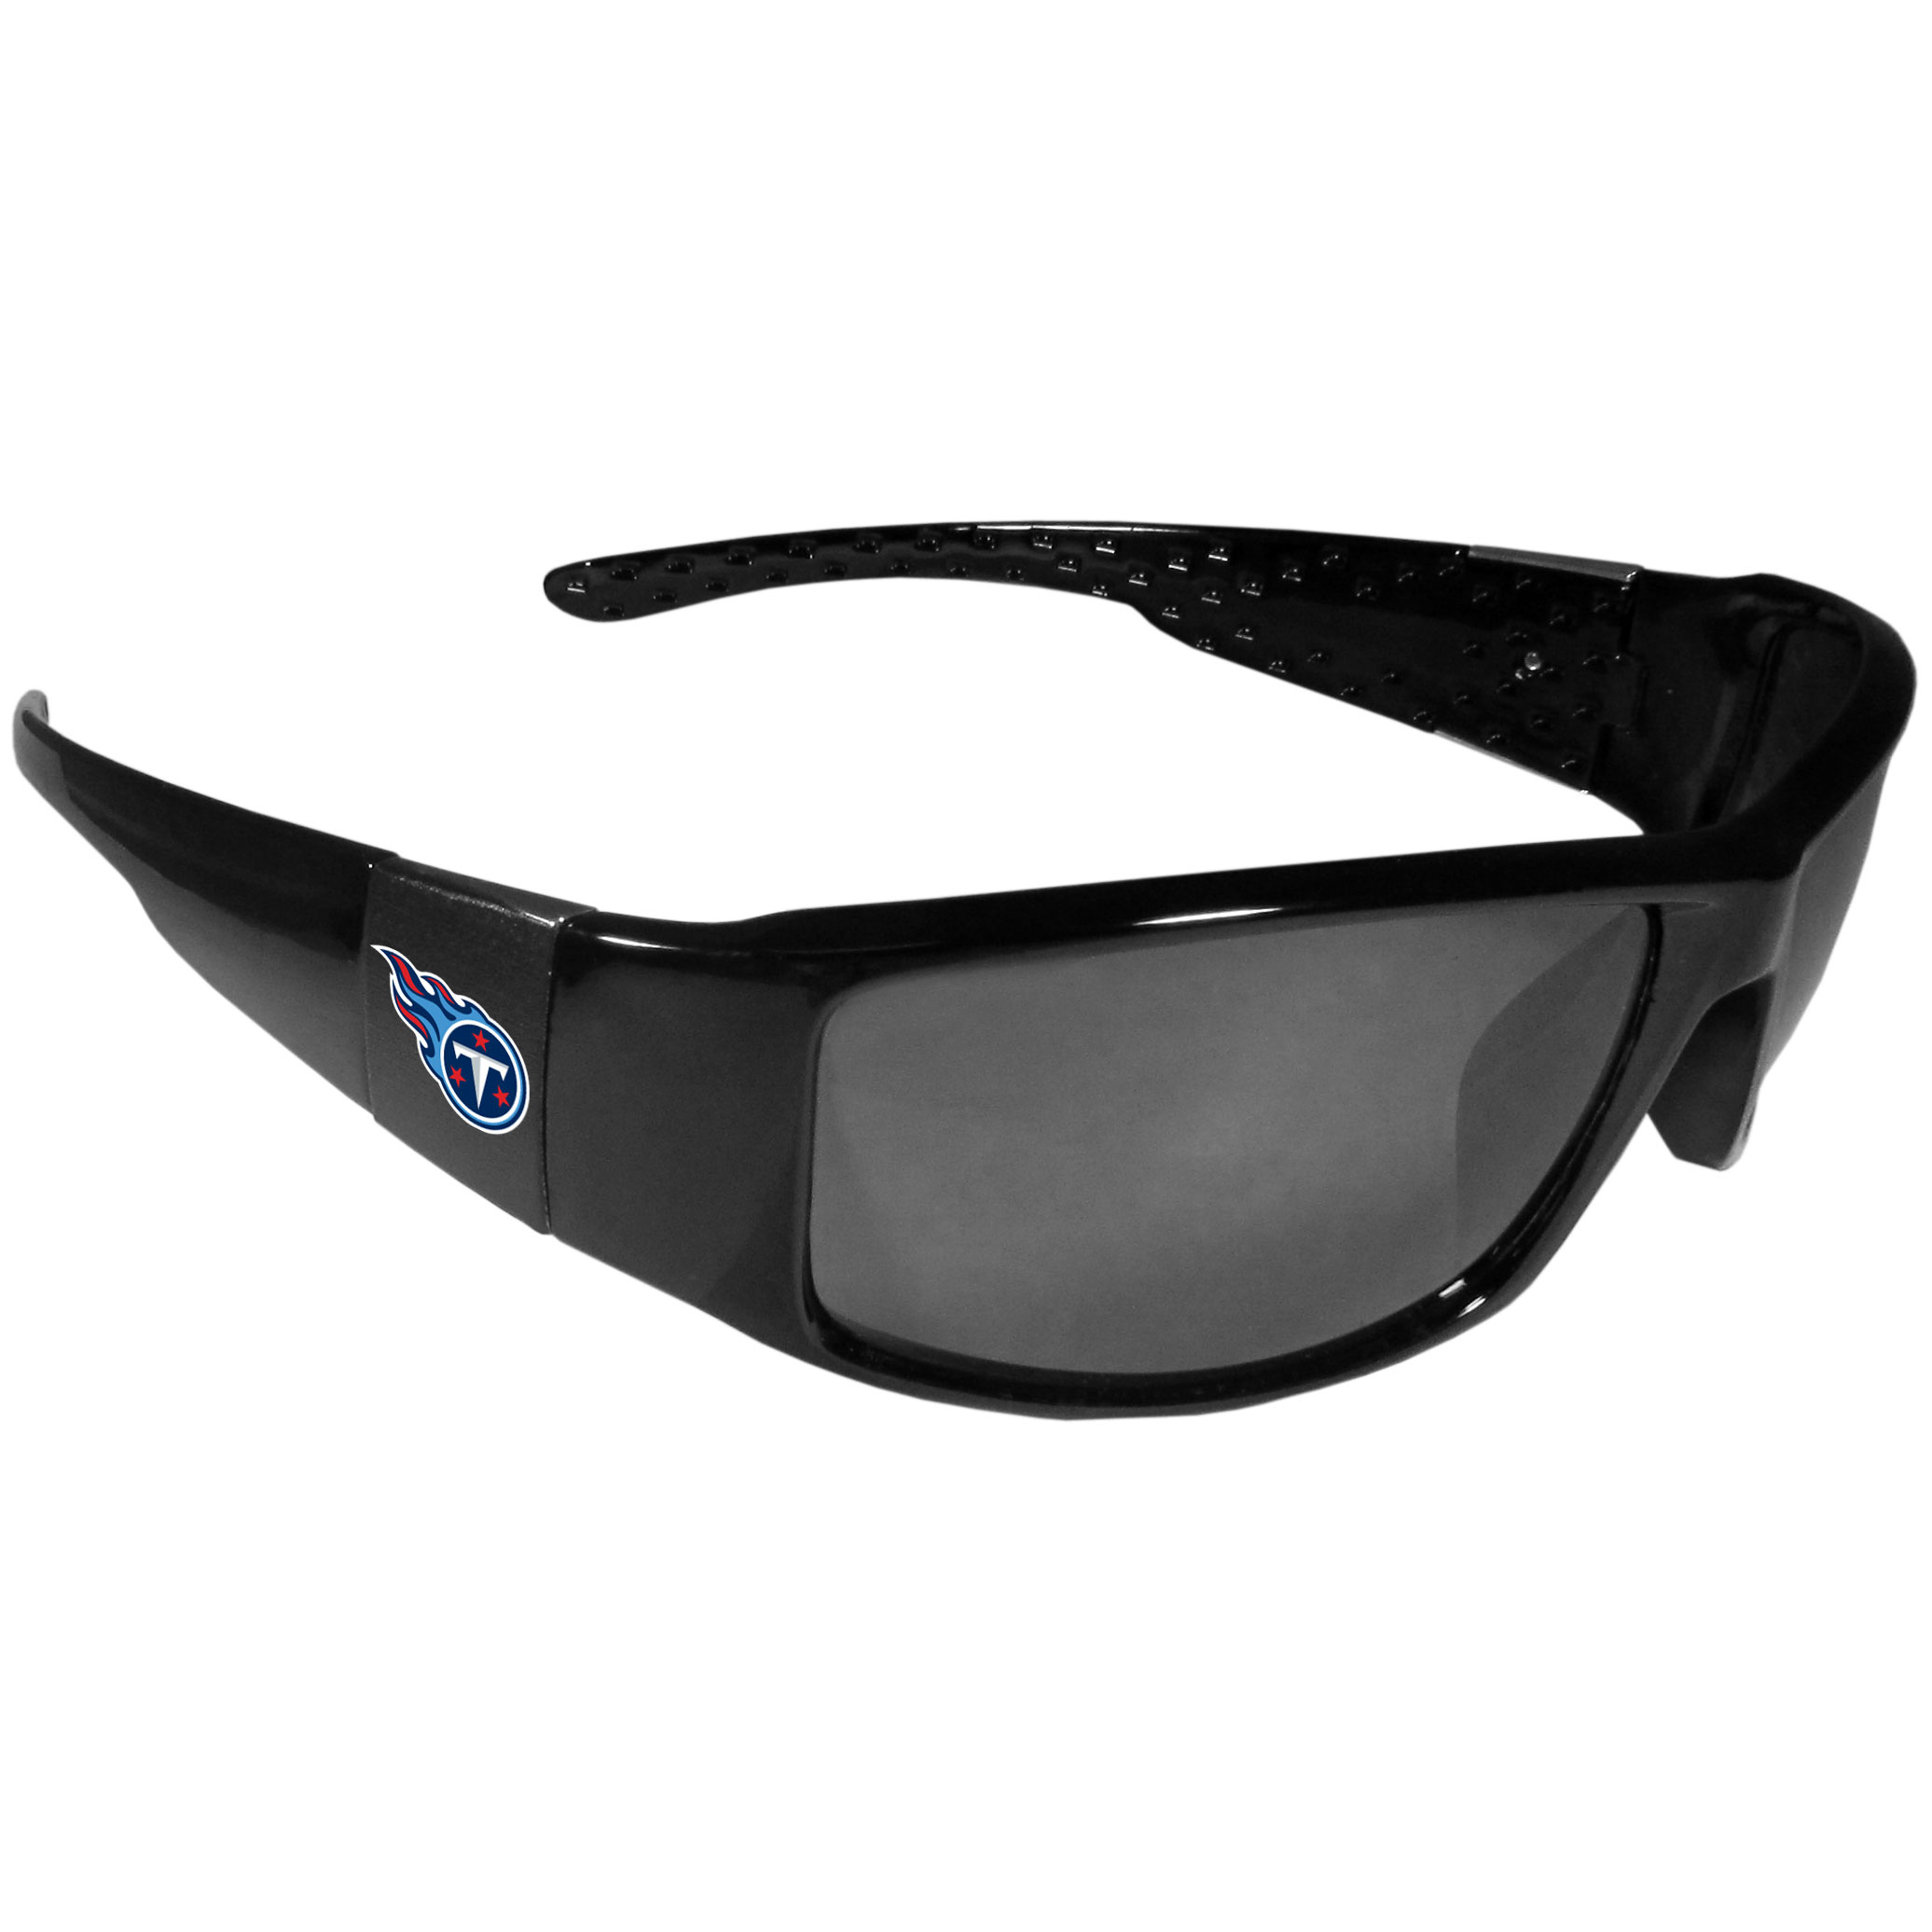 Tennessee Titans Black Wrap Sunglasses - These designer inspired frames have a sleek look in all black with  Tennessee Titans shields on each arm with a printed logo. The shades are perfect for any outdoor activity like; golfing, driving, hiking, fishing or cheering on the team at a tailgating event or at a home game day BBQ with a lens rating of 100% UVA/UVB for maximum UV protection. The high-quality frames are as durable as they are fashionable and with their classic look they are the perfect fan accessory that can be worn everyday for every occasion.